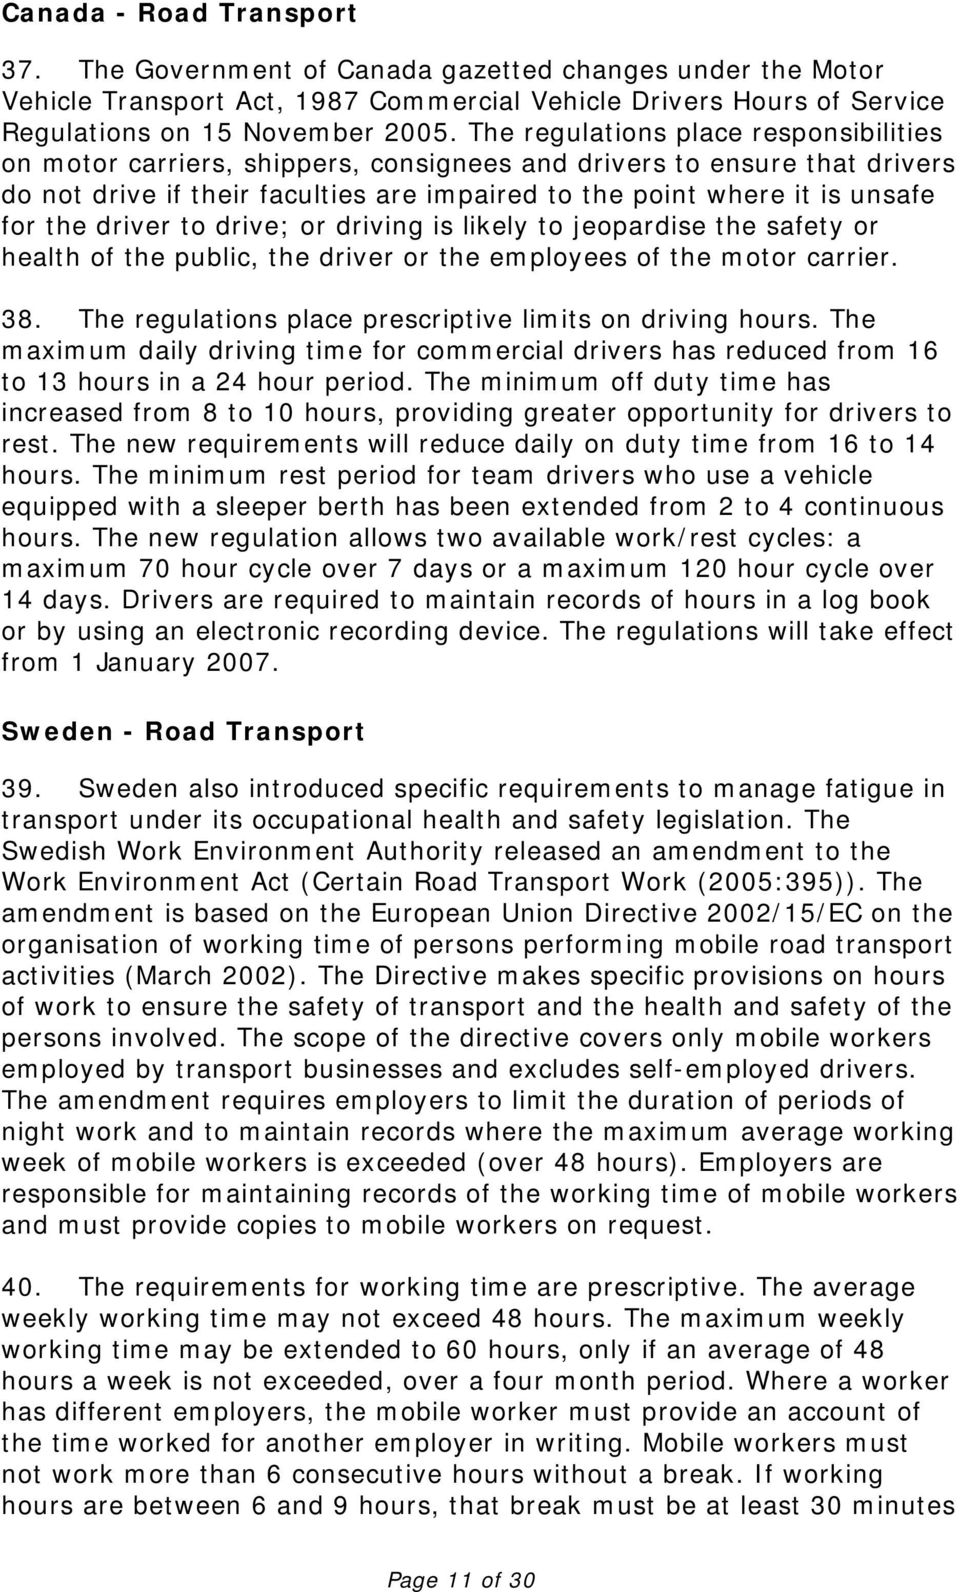 driver to drive; or driving is likely to jeopardise the safety or health of the public, the driver or the employees of the motor carrier. 38.